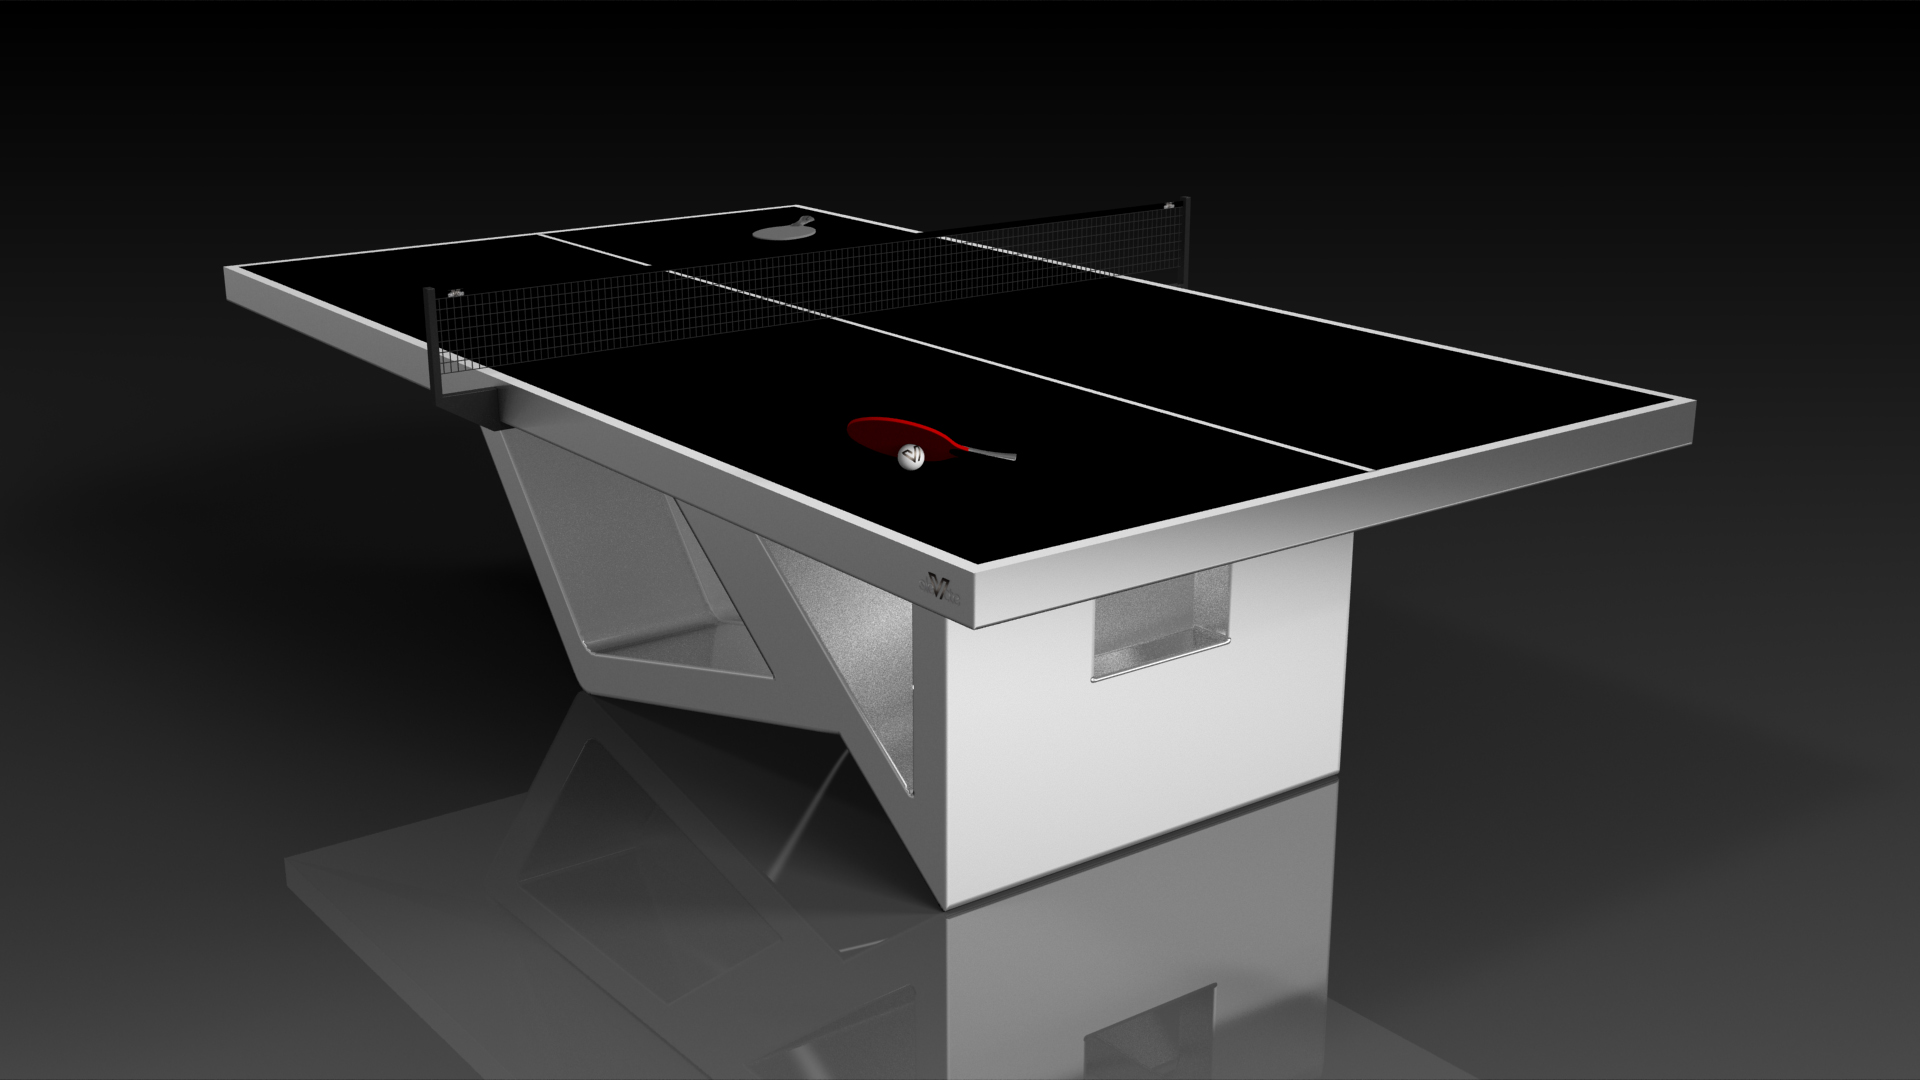 Elevate Customs modern design rumba Ping Pong Table tennis brushed aluminum 4